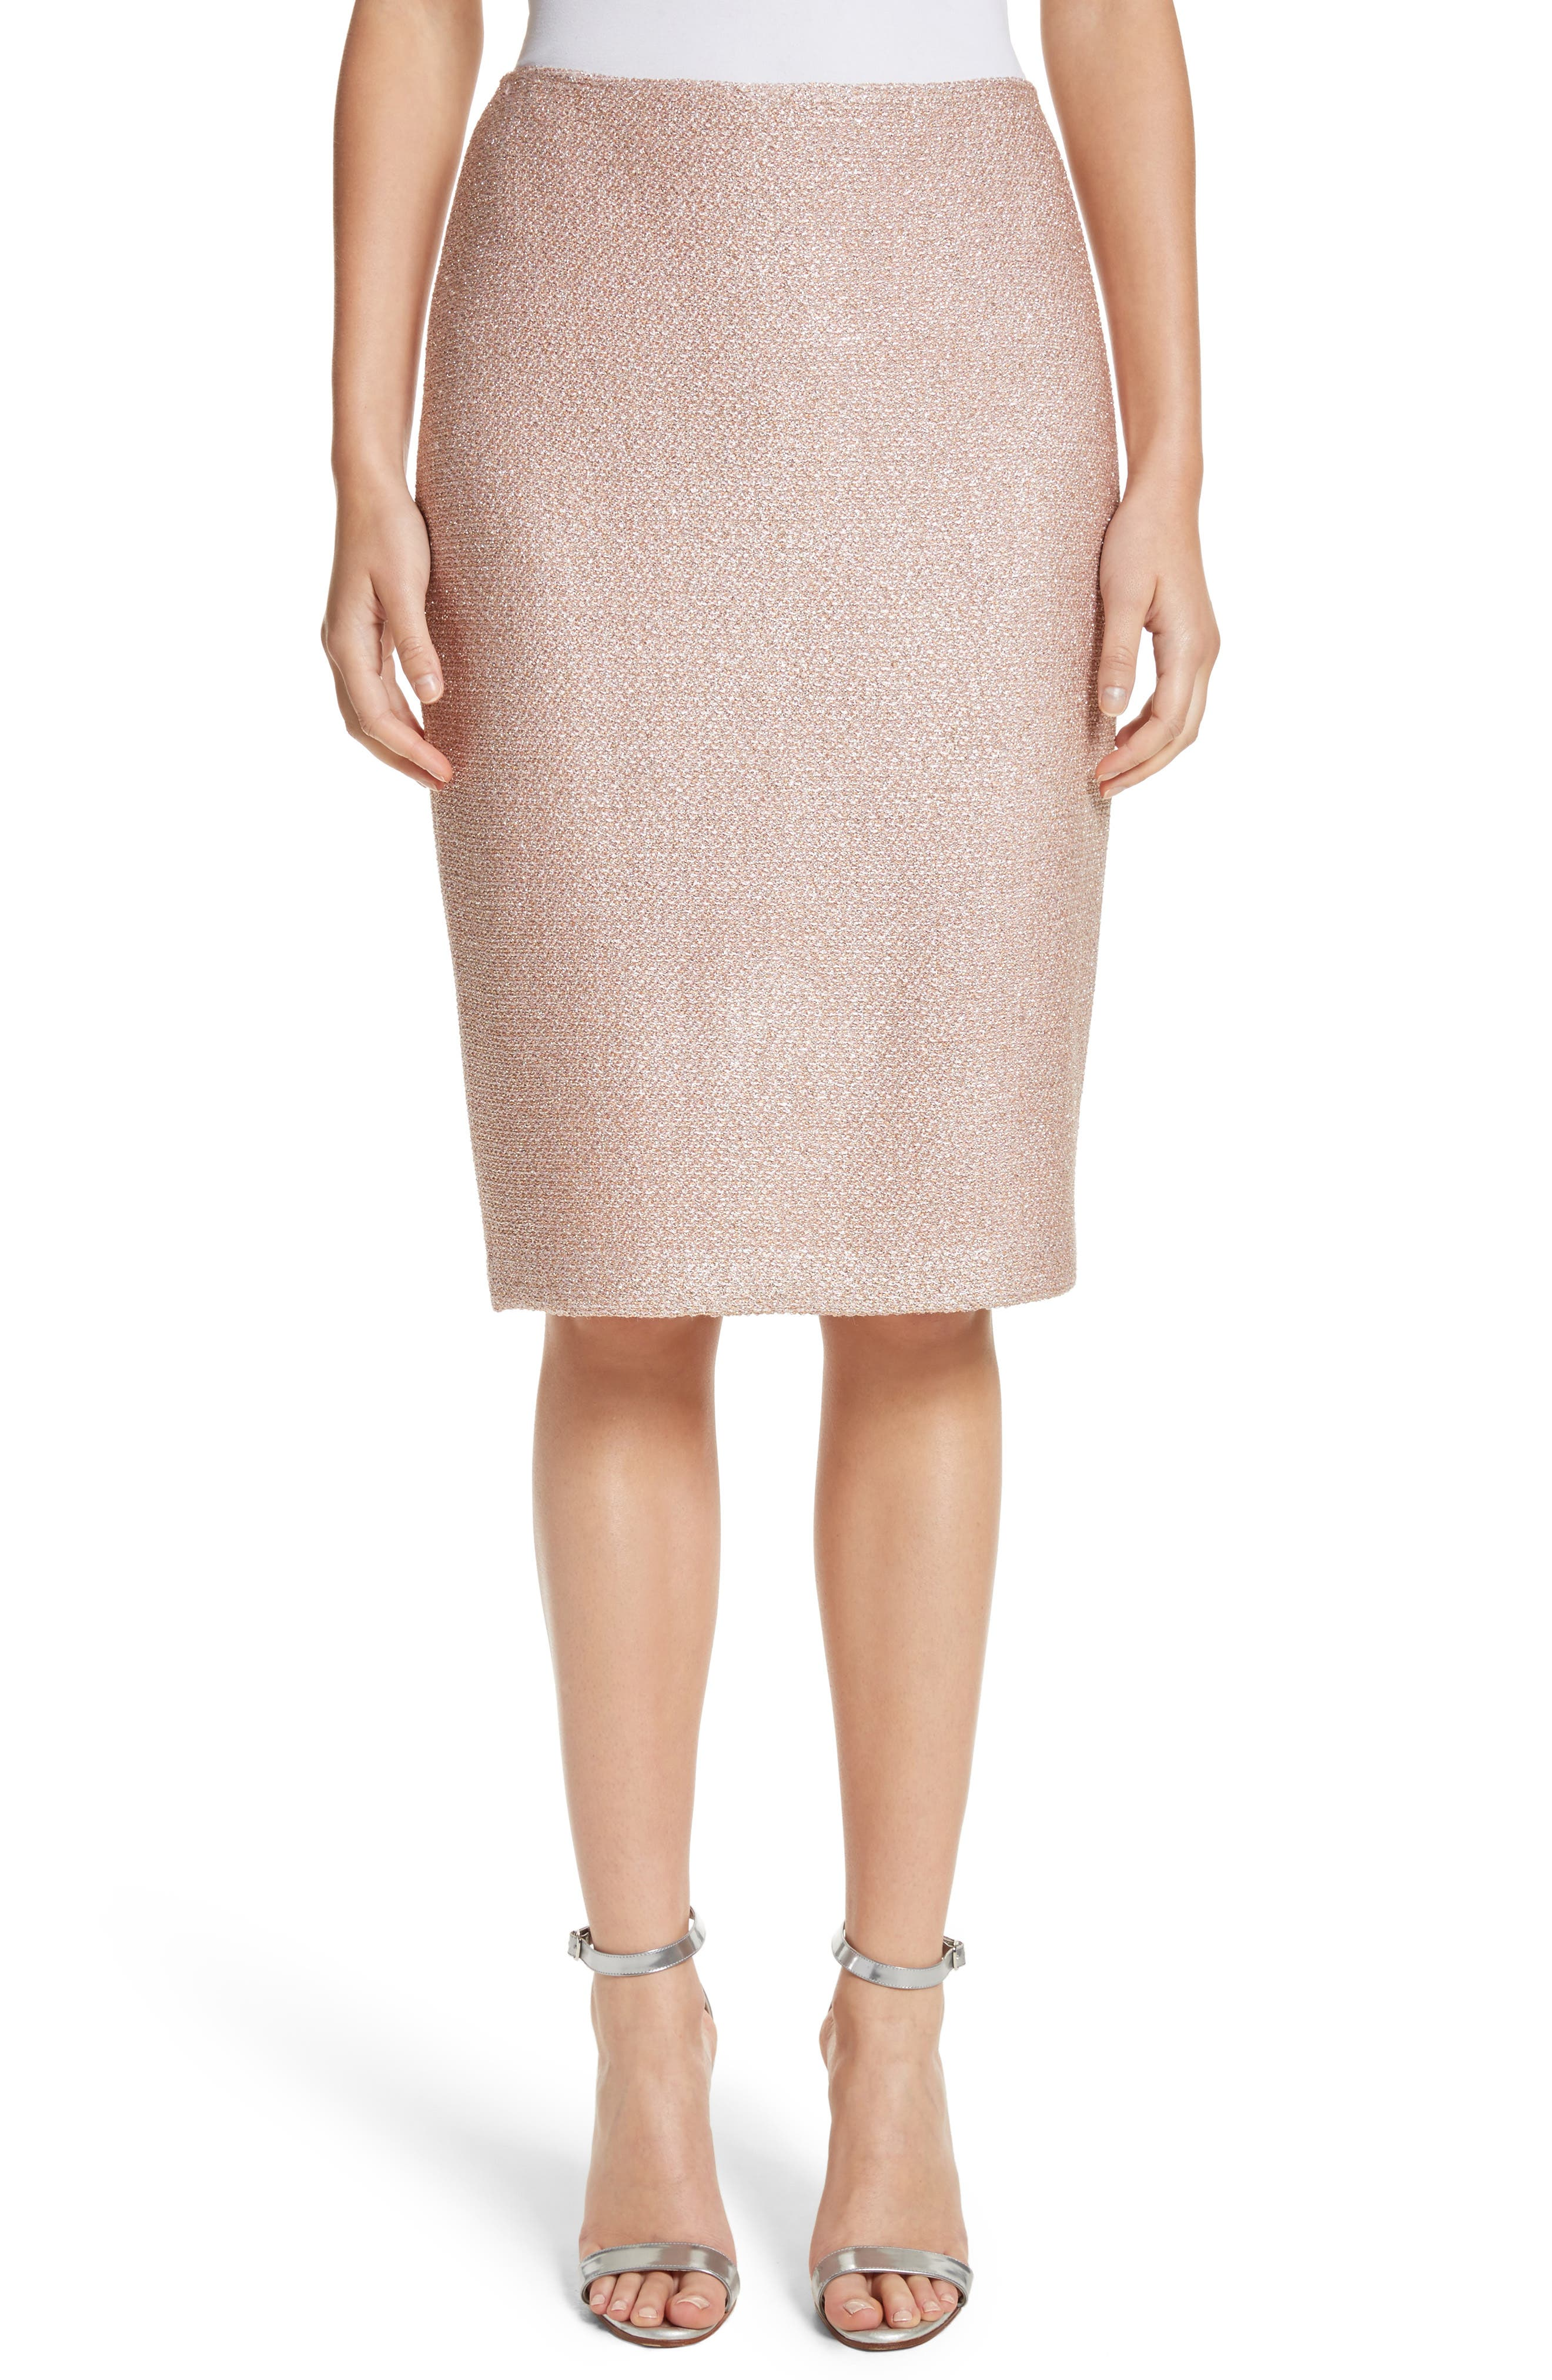 ST. JOHN COLLECTION Frosted Metallic Knit Pencil Skirt, Main, color, 660